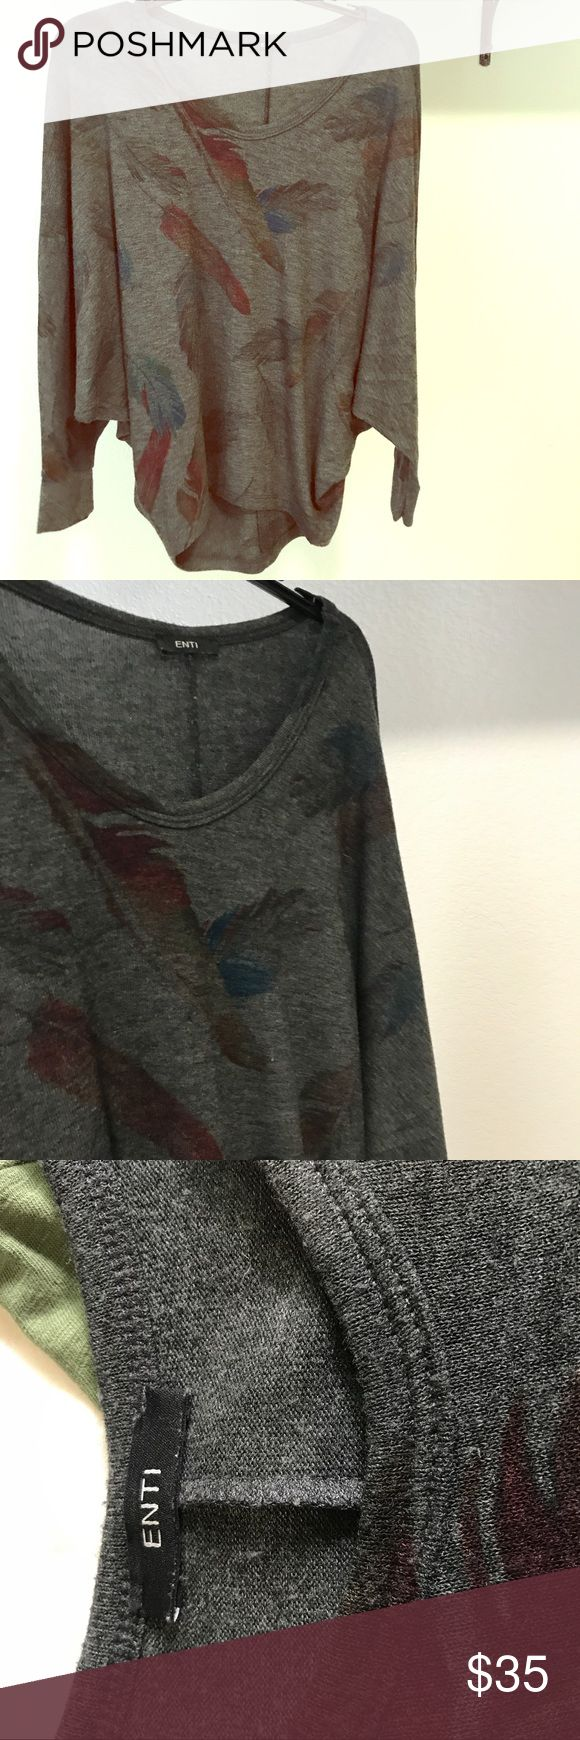 Feather Print Dolman Top Size  Small, Enti Top. Lightweight sweatshirt feel, Dolman sleeves, fun feather print. Purchased at St Bernard's in Austin, TX. Perfect Condition, never worn! Please No Trades or Holds. Only selling on Posh. Price is Firm. Enti Tops